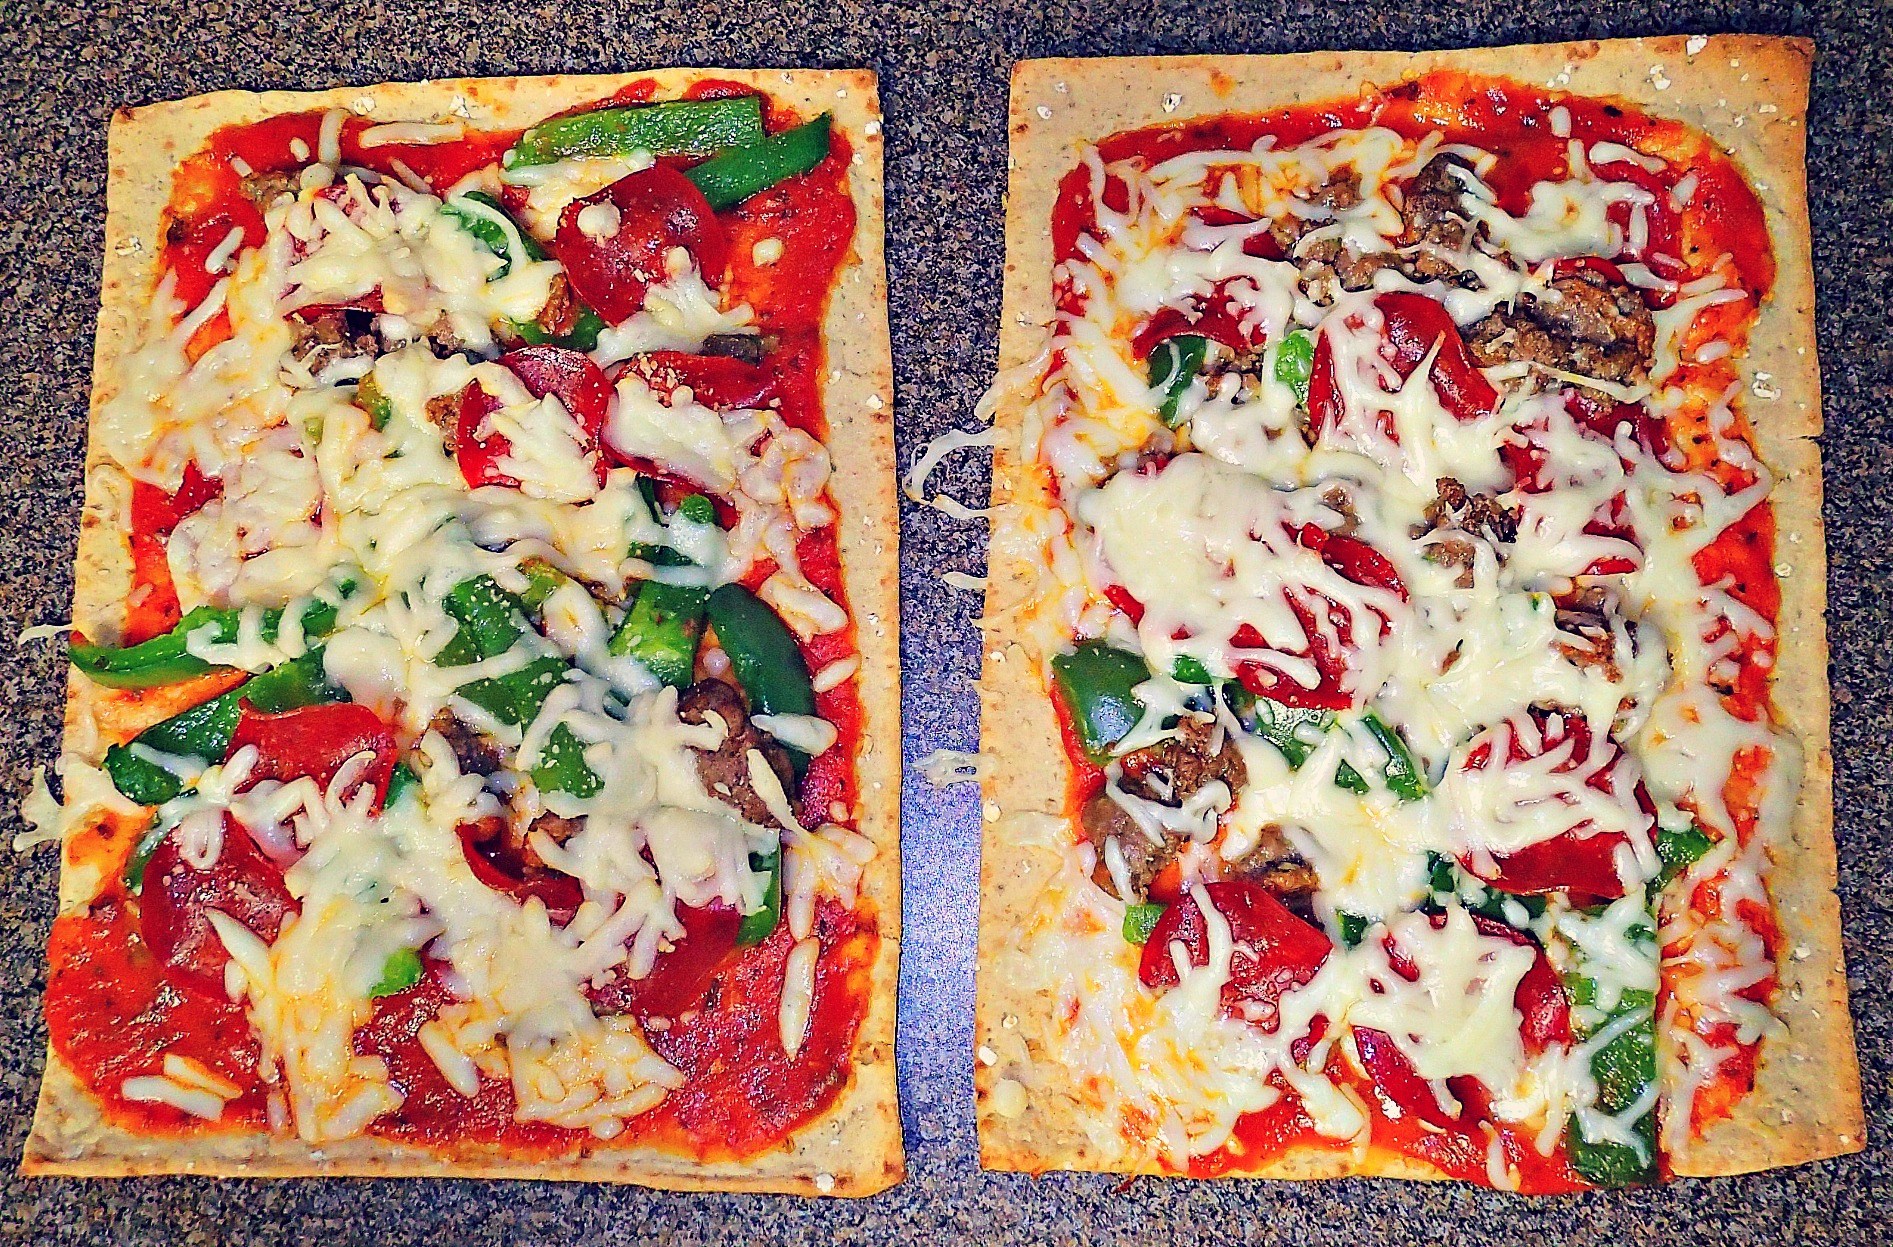 250 calorie flatbread pizza